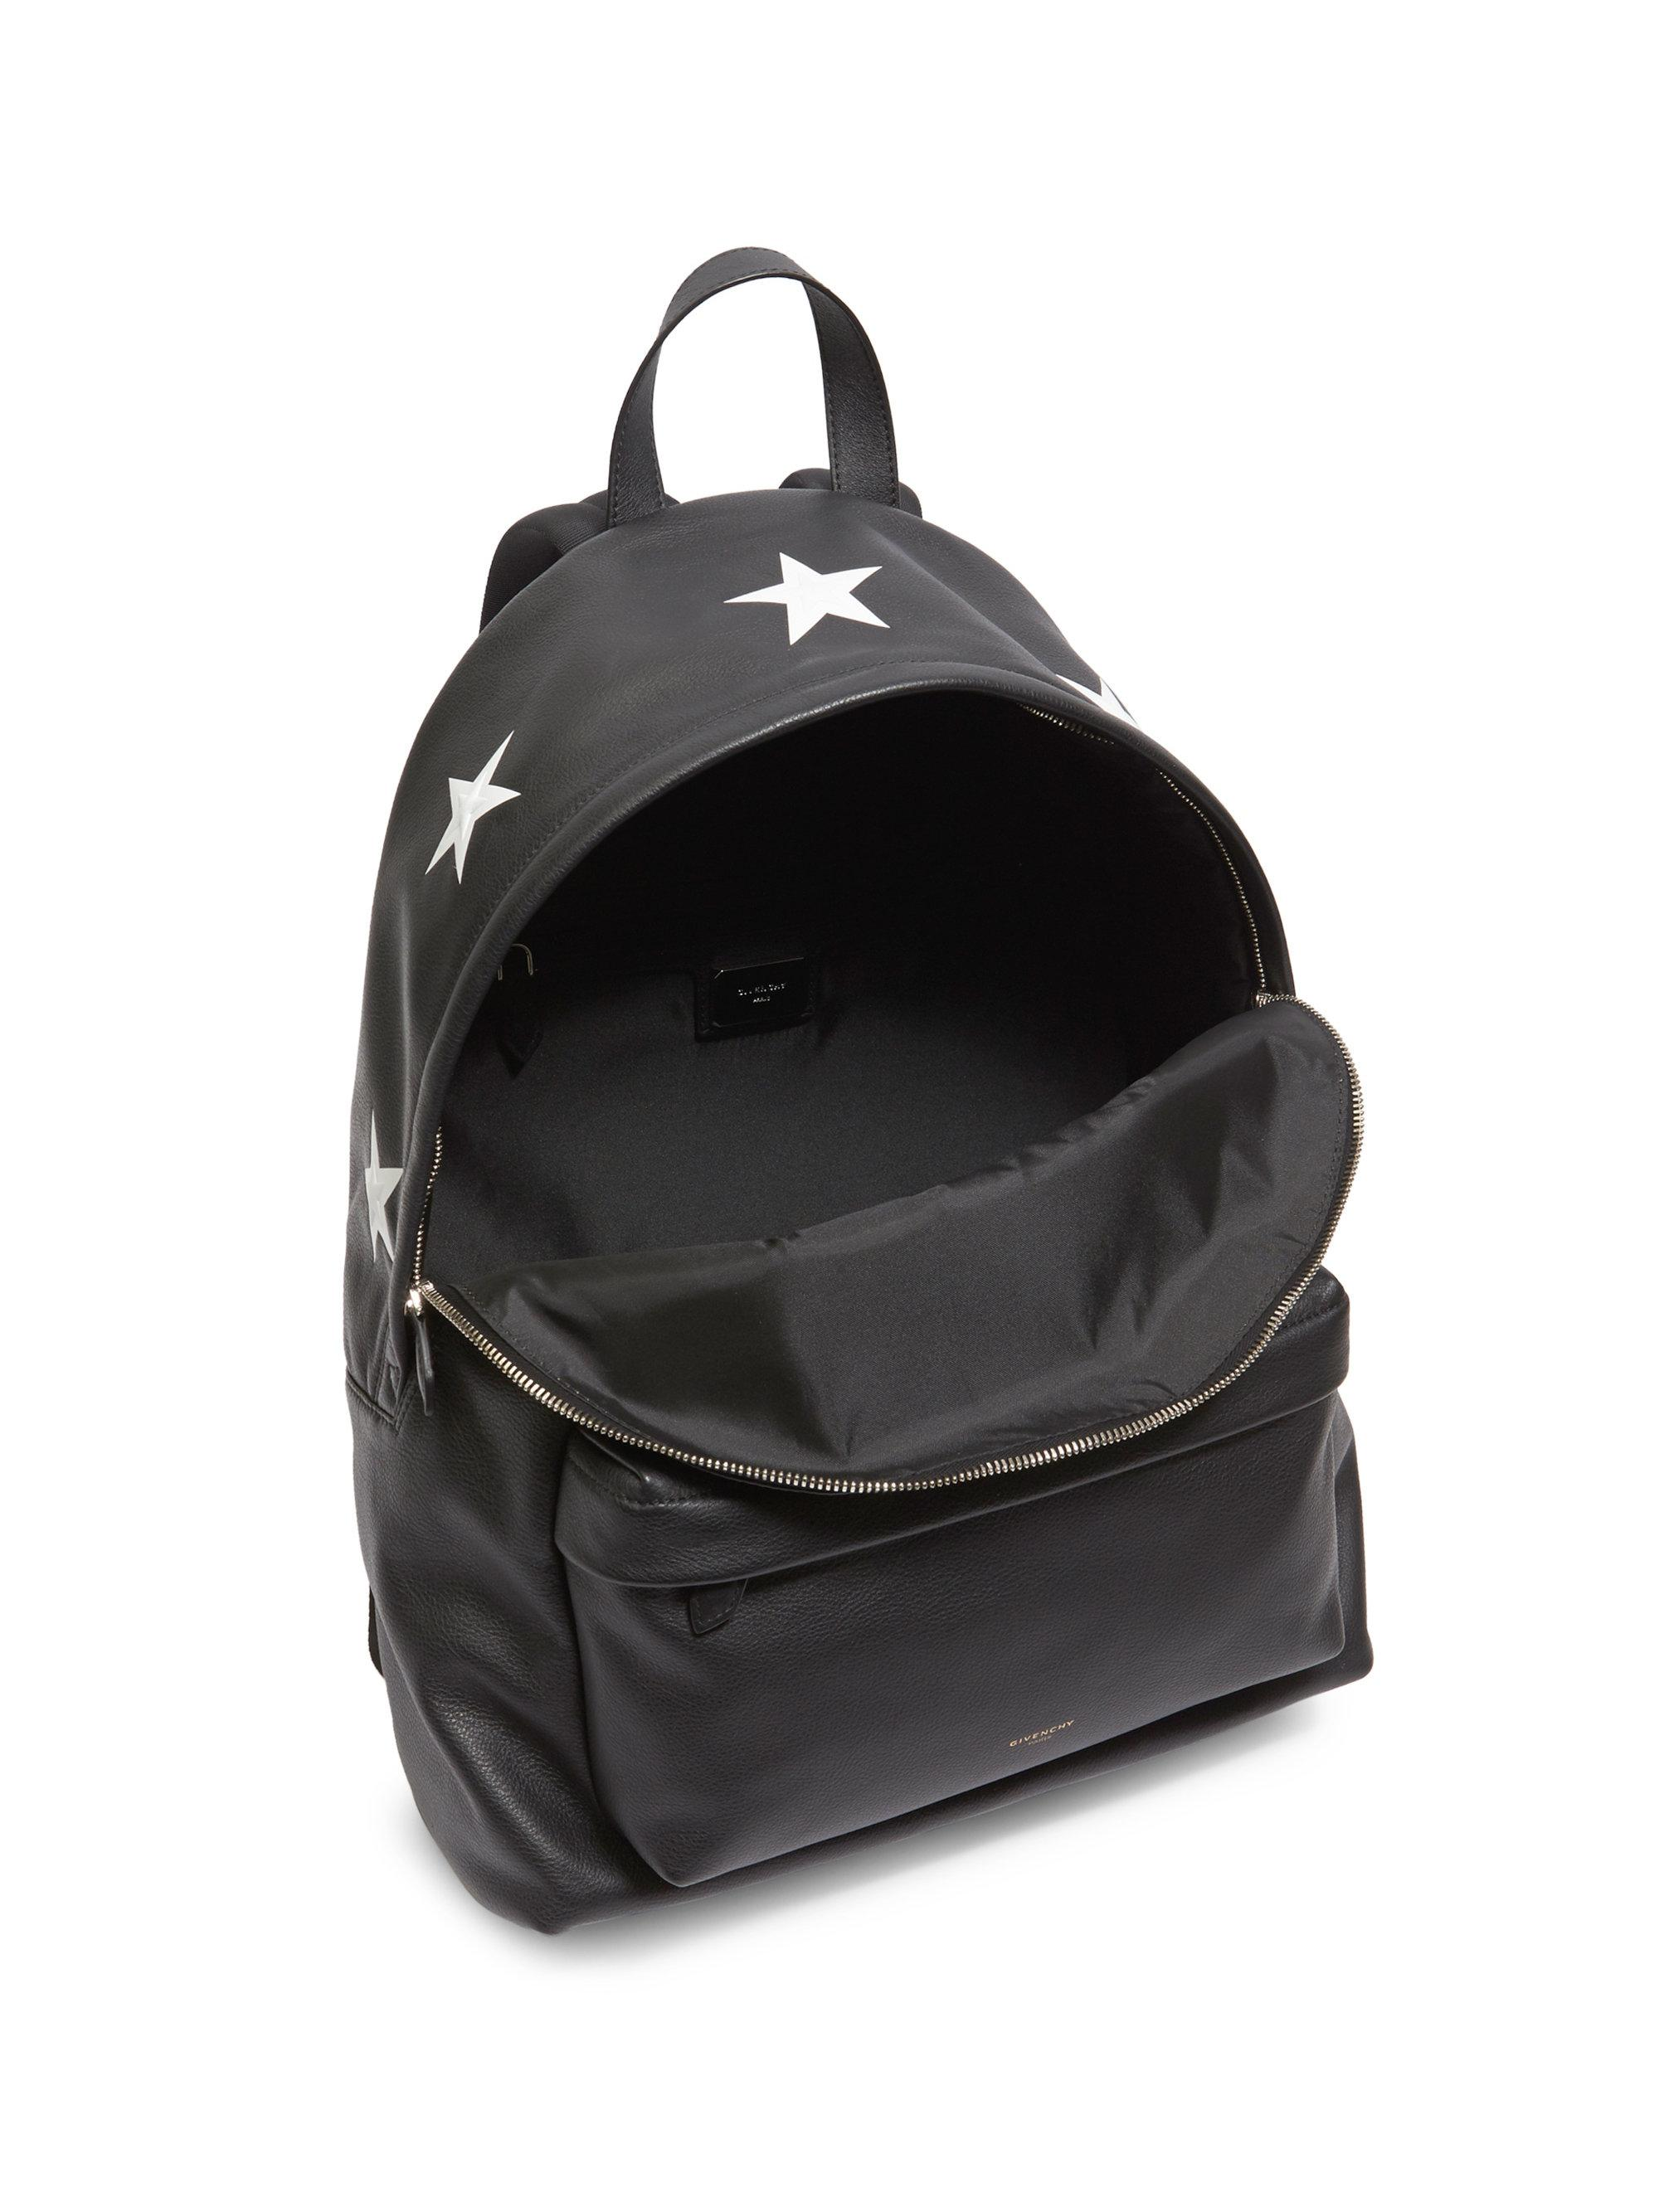 dad4d84e28 Lyst - Givenchy Large Star Leather Backpack in Black for Men